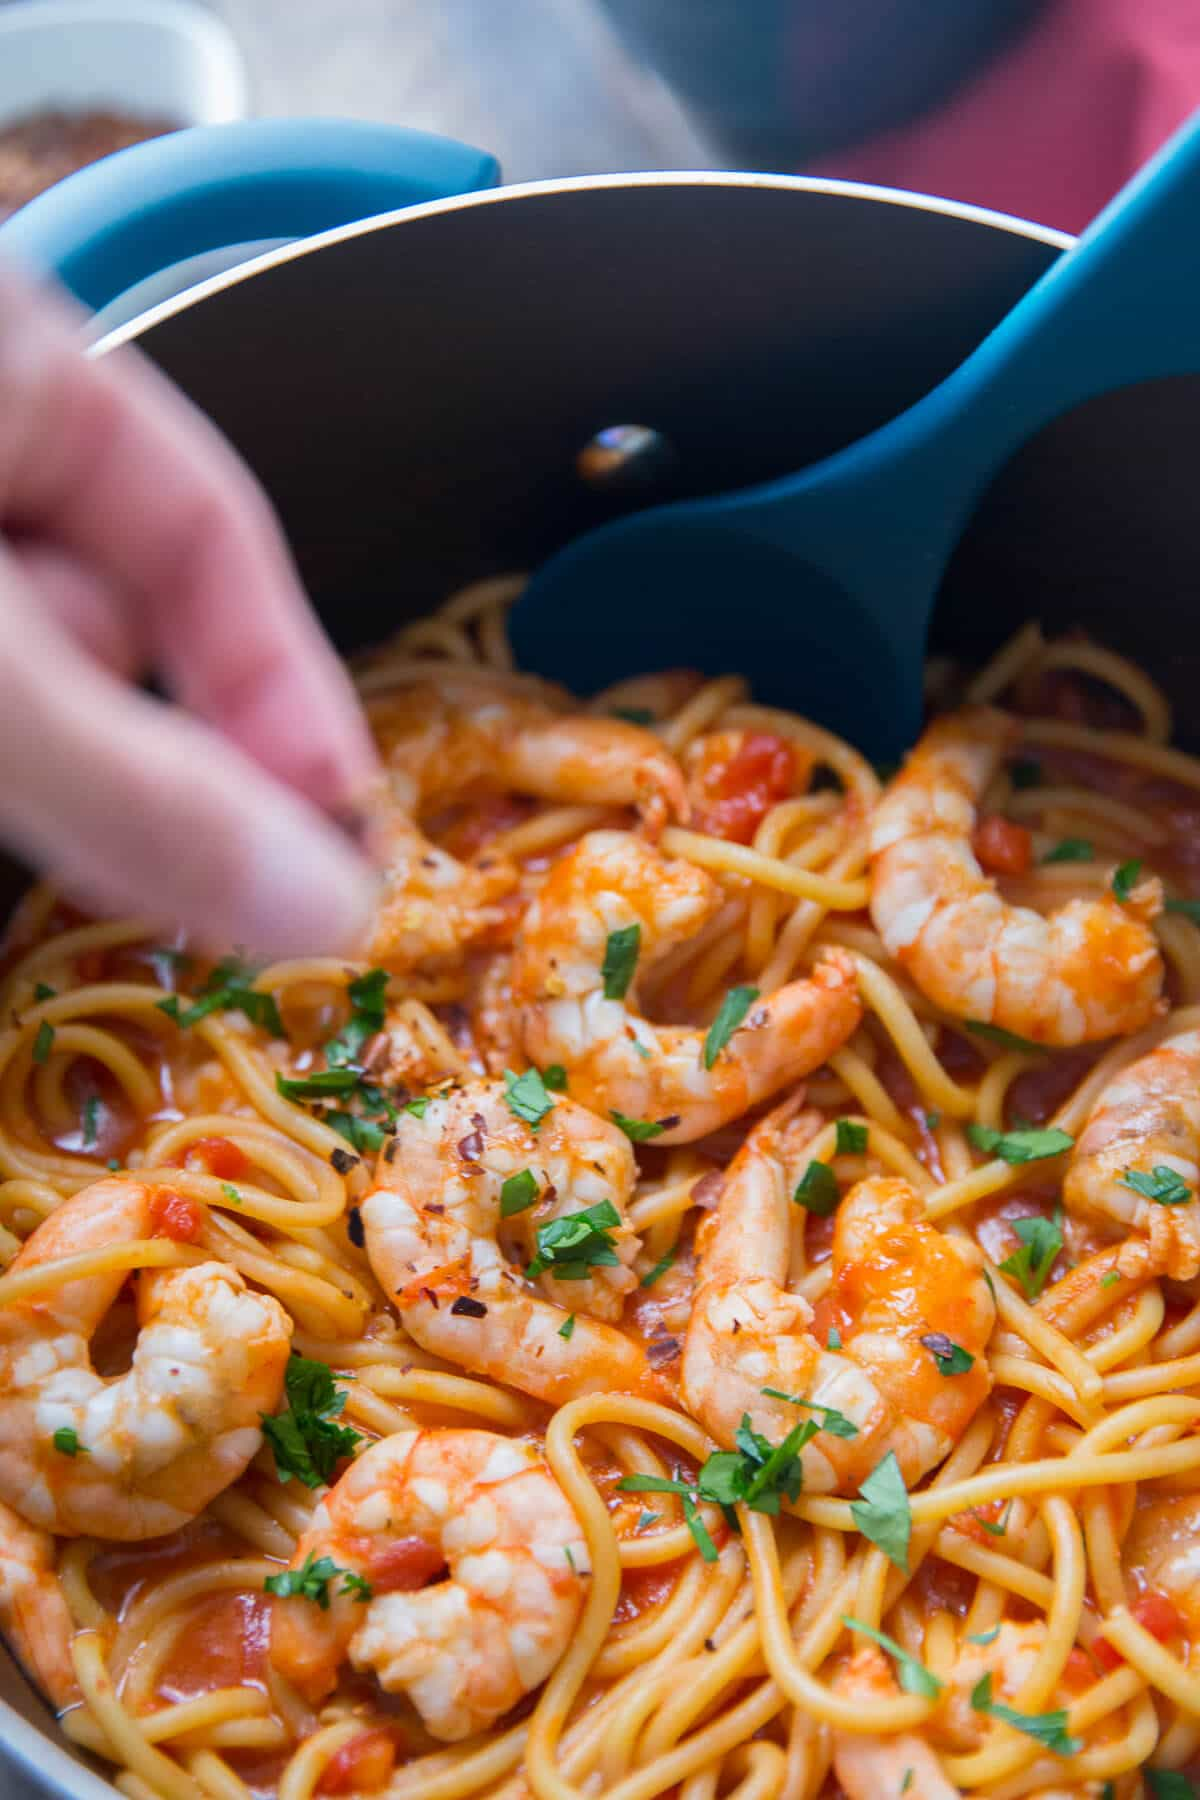 This spicy shrimp diablo is going to heat things up! This is one easy recipe you wiil love!